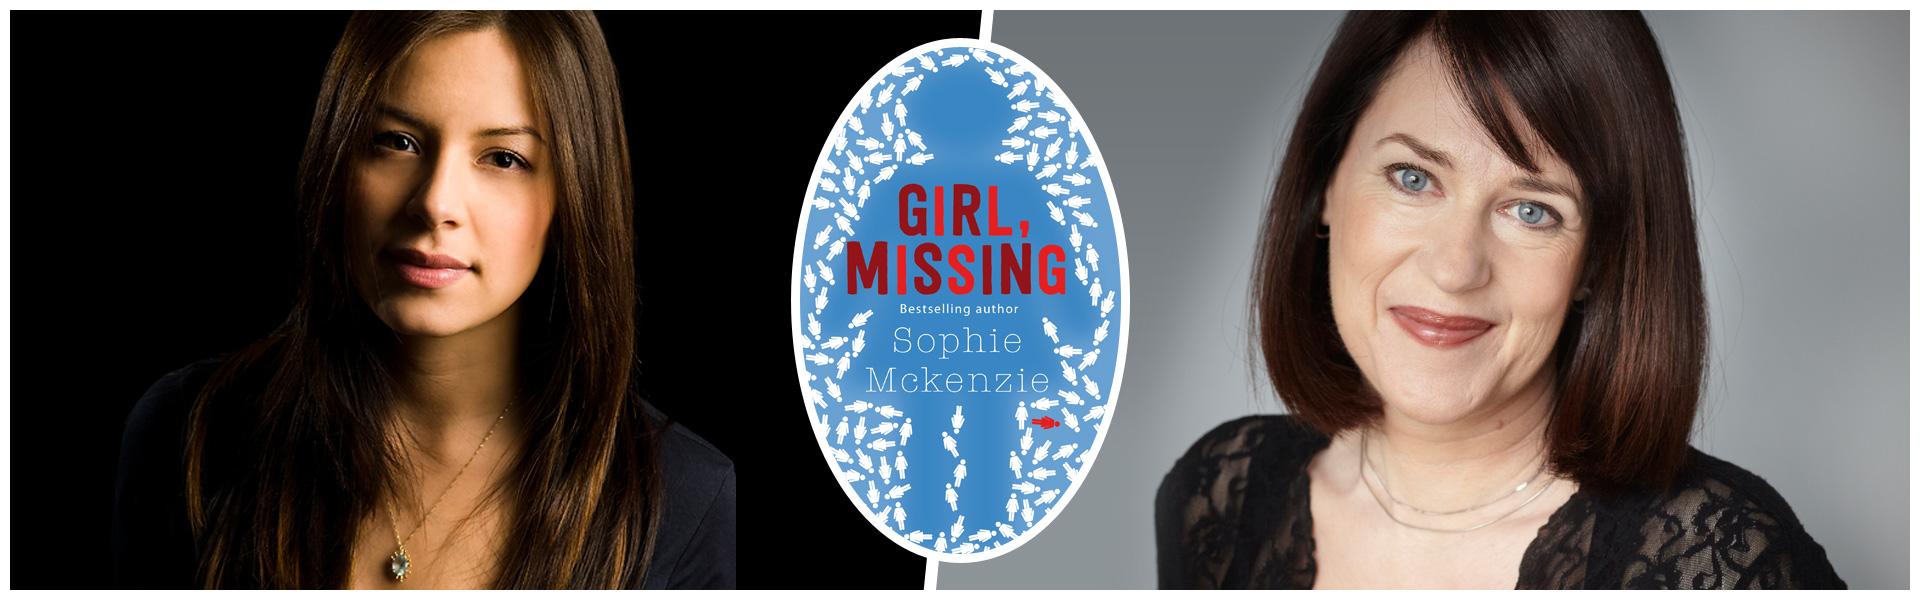 Amy Alward Talks to Sophie McKenzie About Girl, Missing